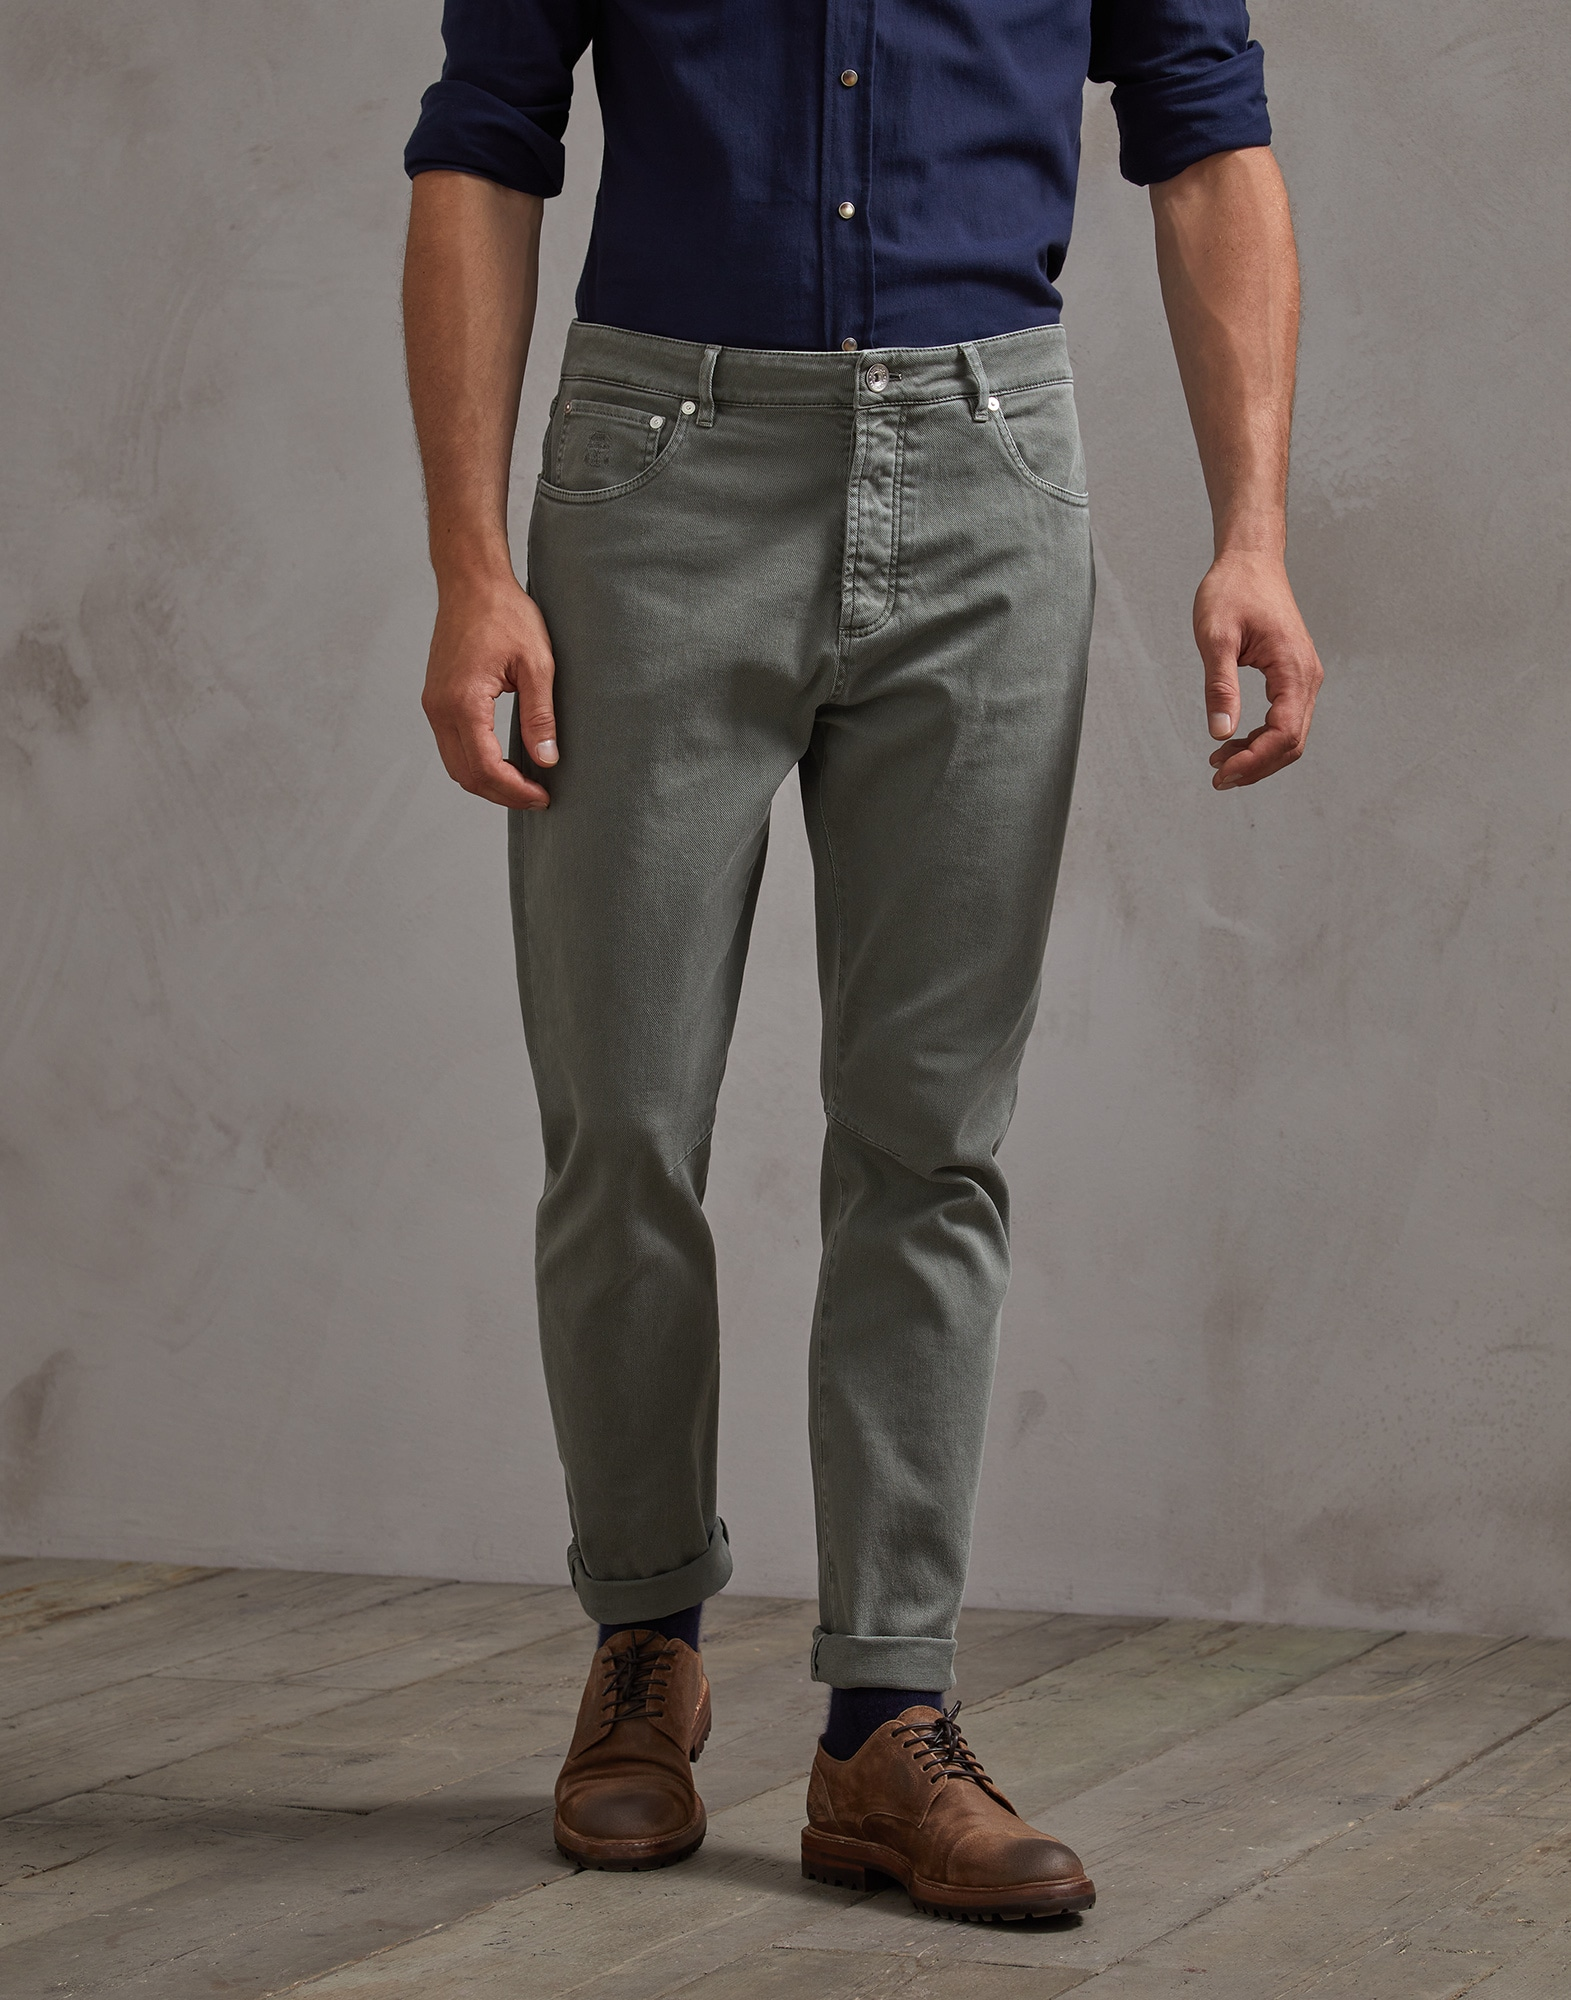 Denim Trousers Khaki Man 0 - Brunello Cucinelli